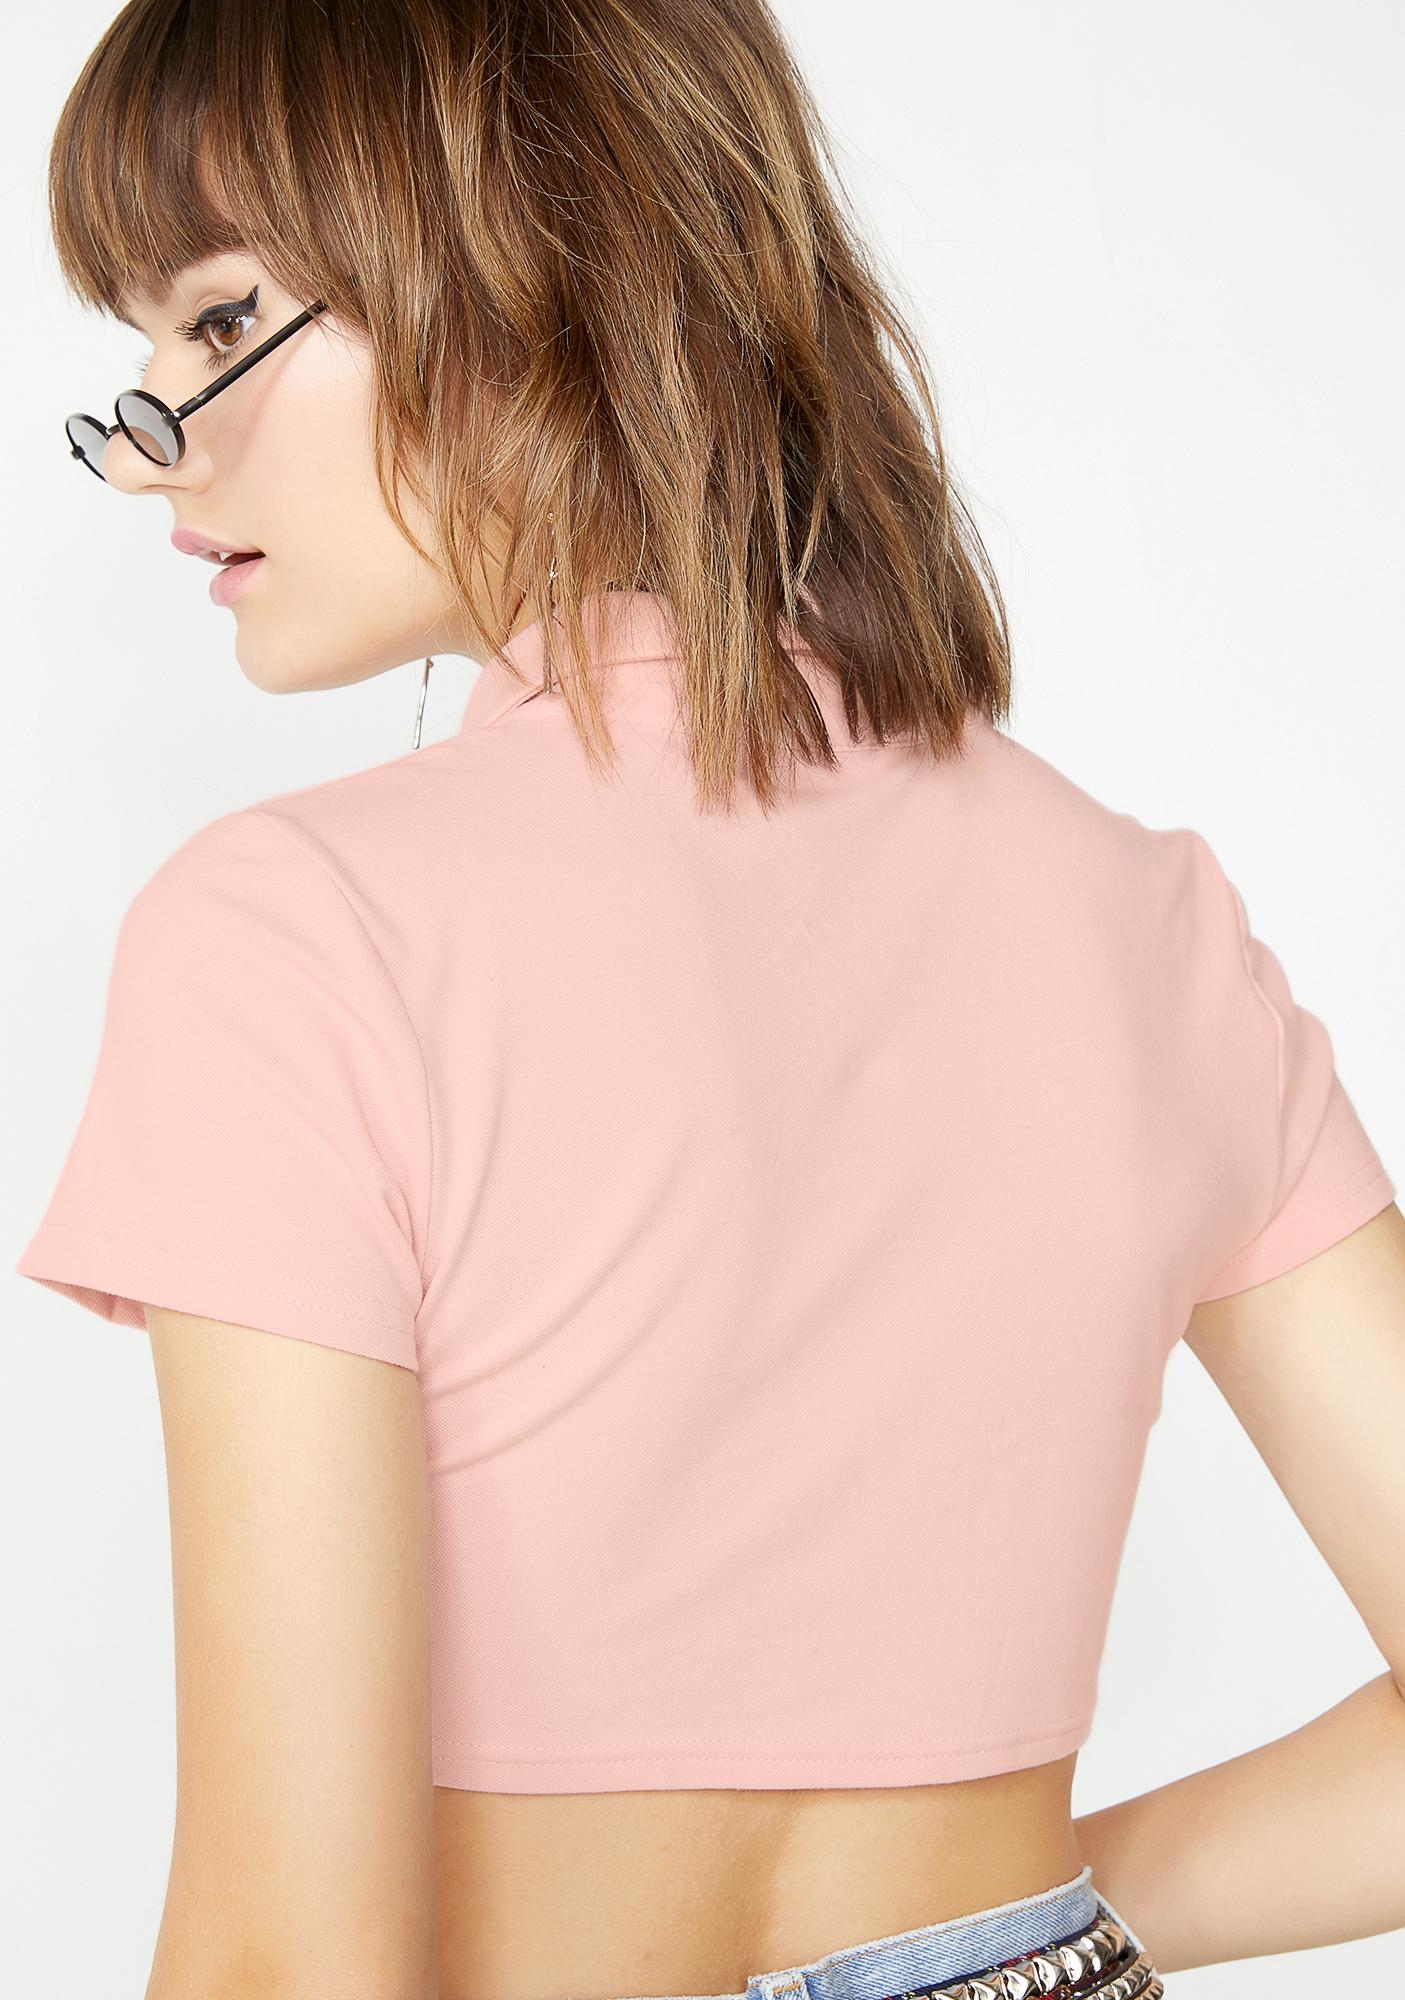 Clouded Thoughts Crop Top